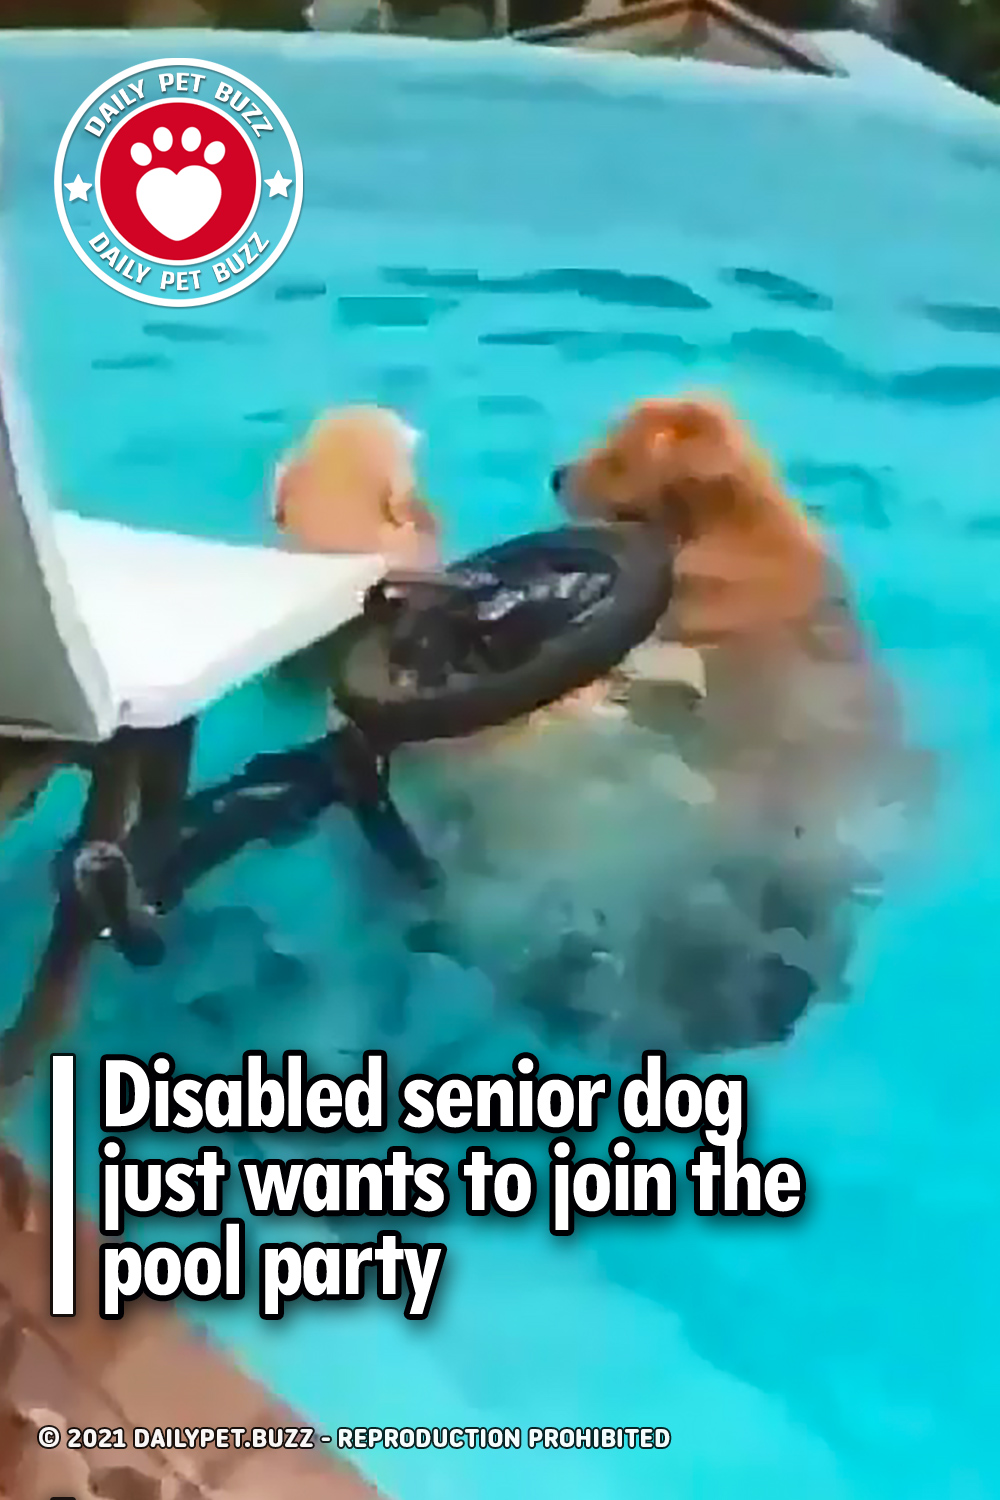 Disabled senior dog just wants to join the pool party